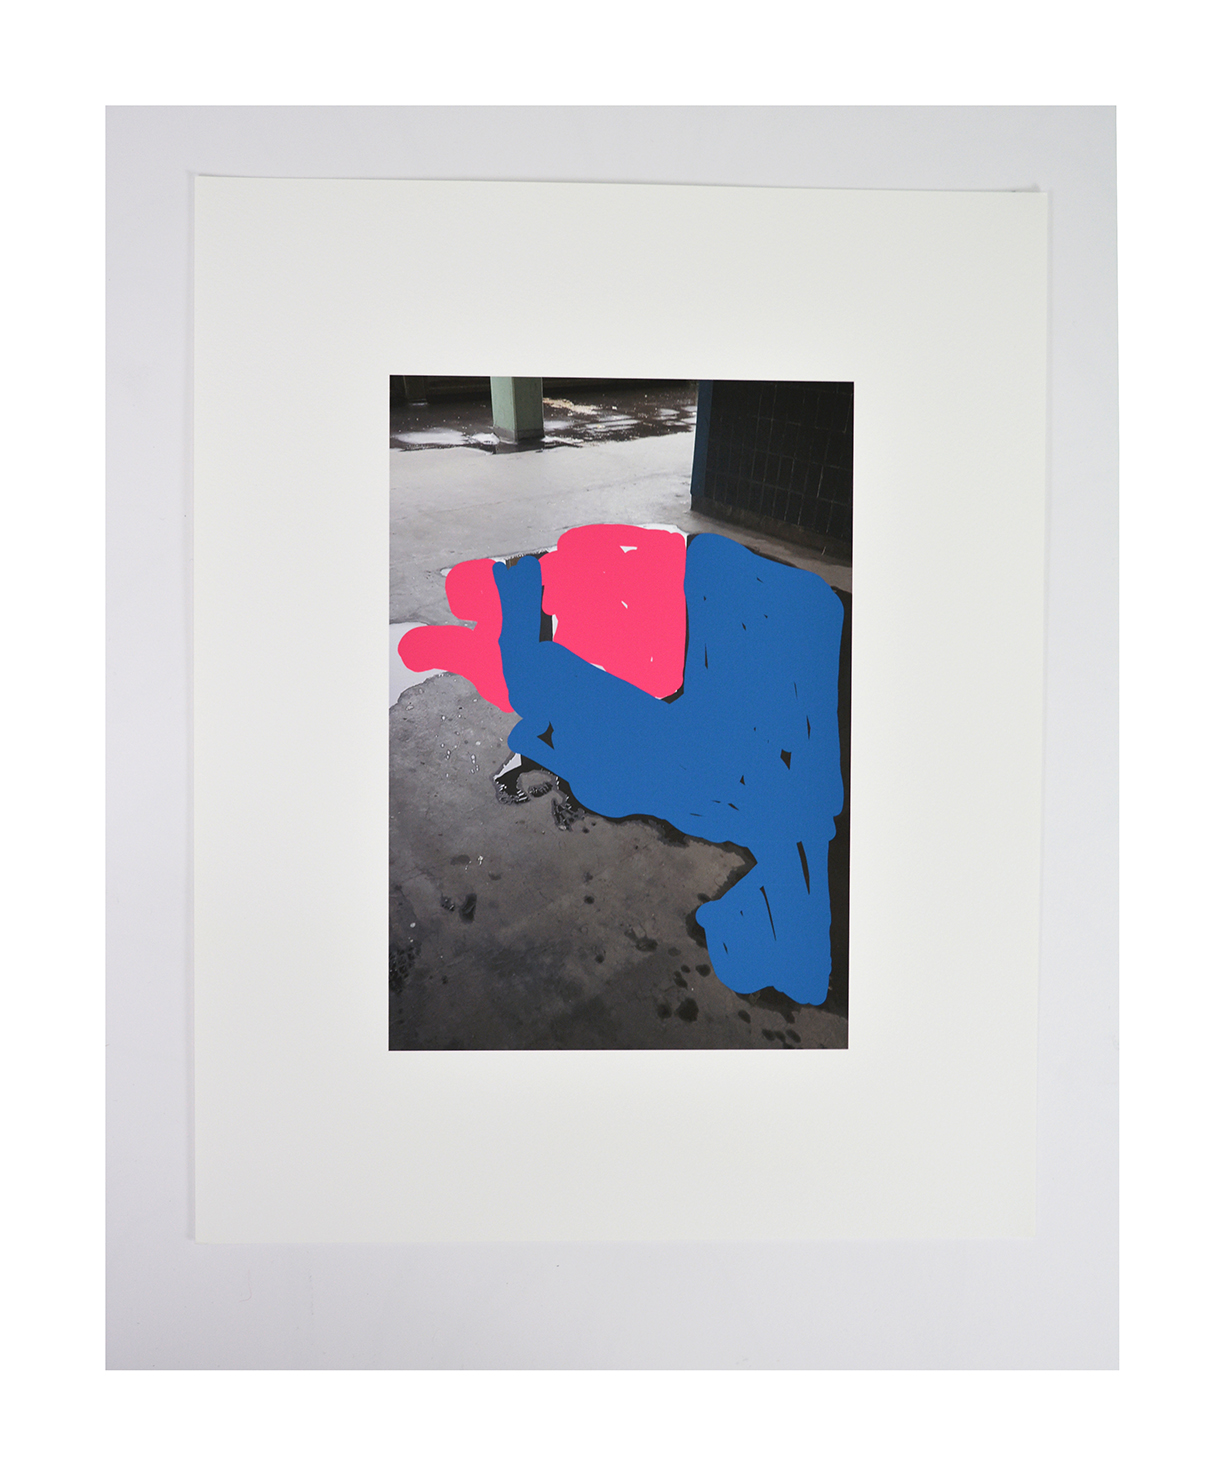 Estate/Puddle  archival inkjet print on Somerset paper 39x31cm 2020 edition of 10